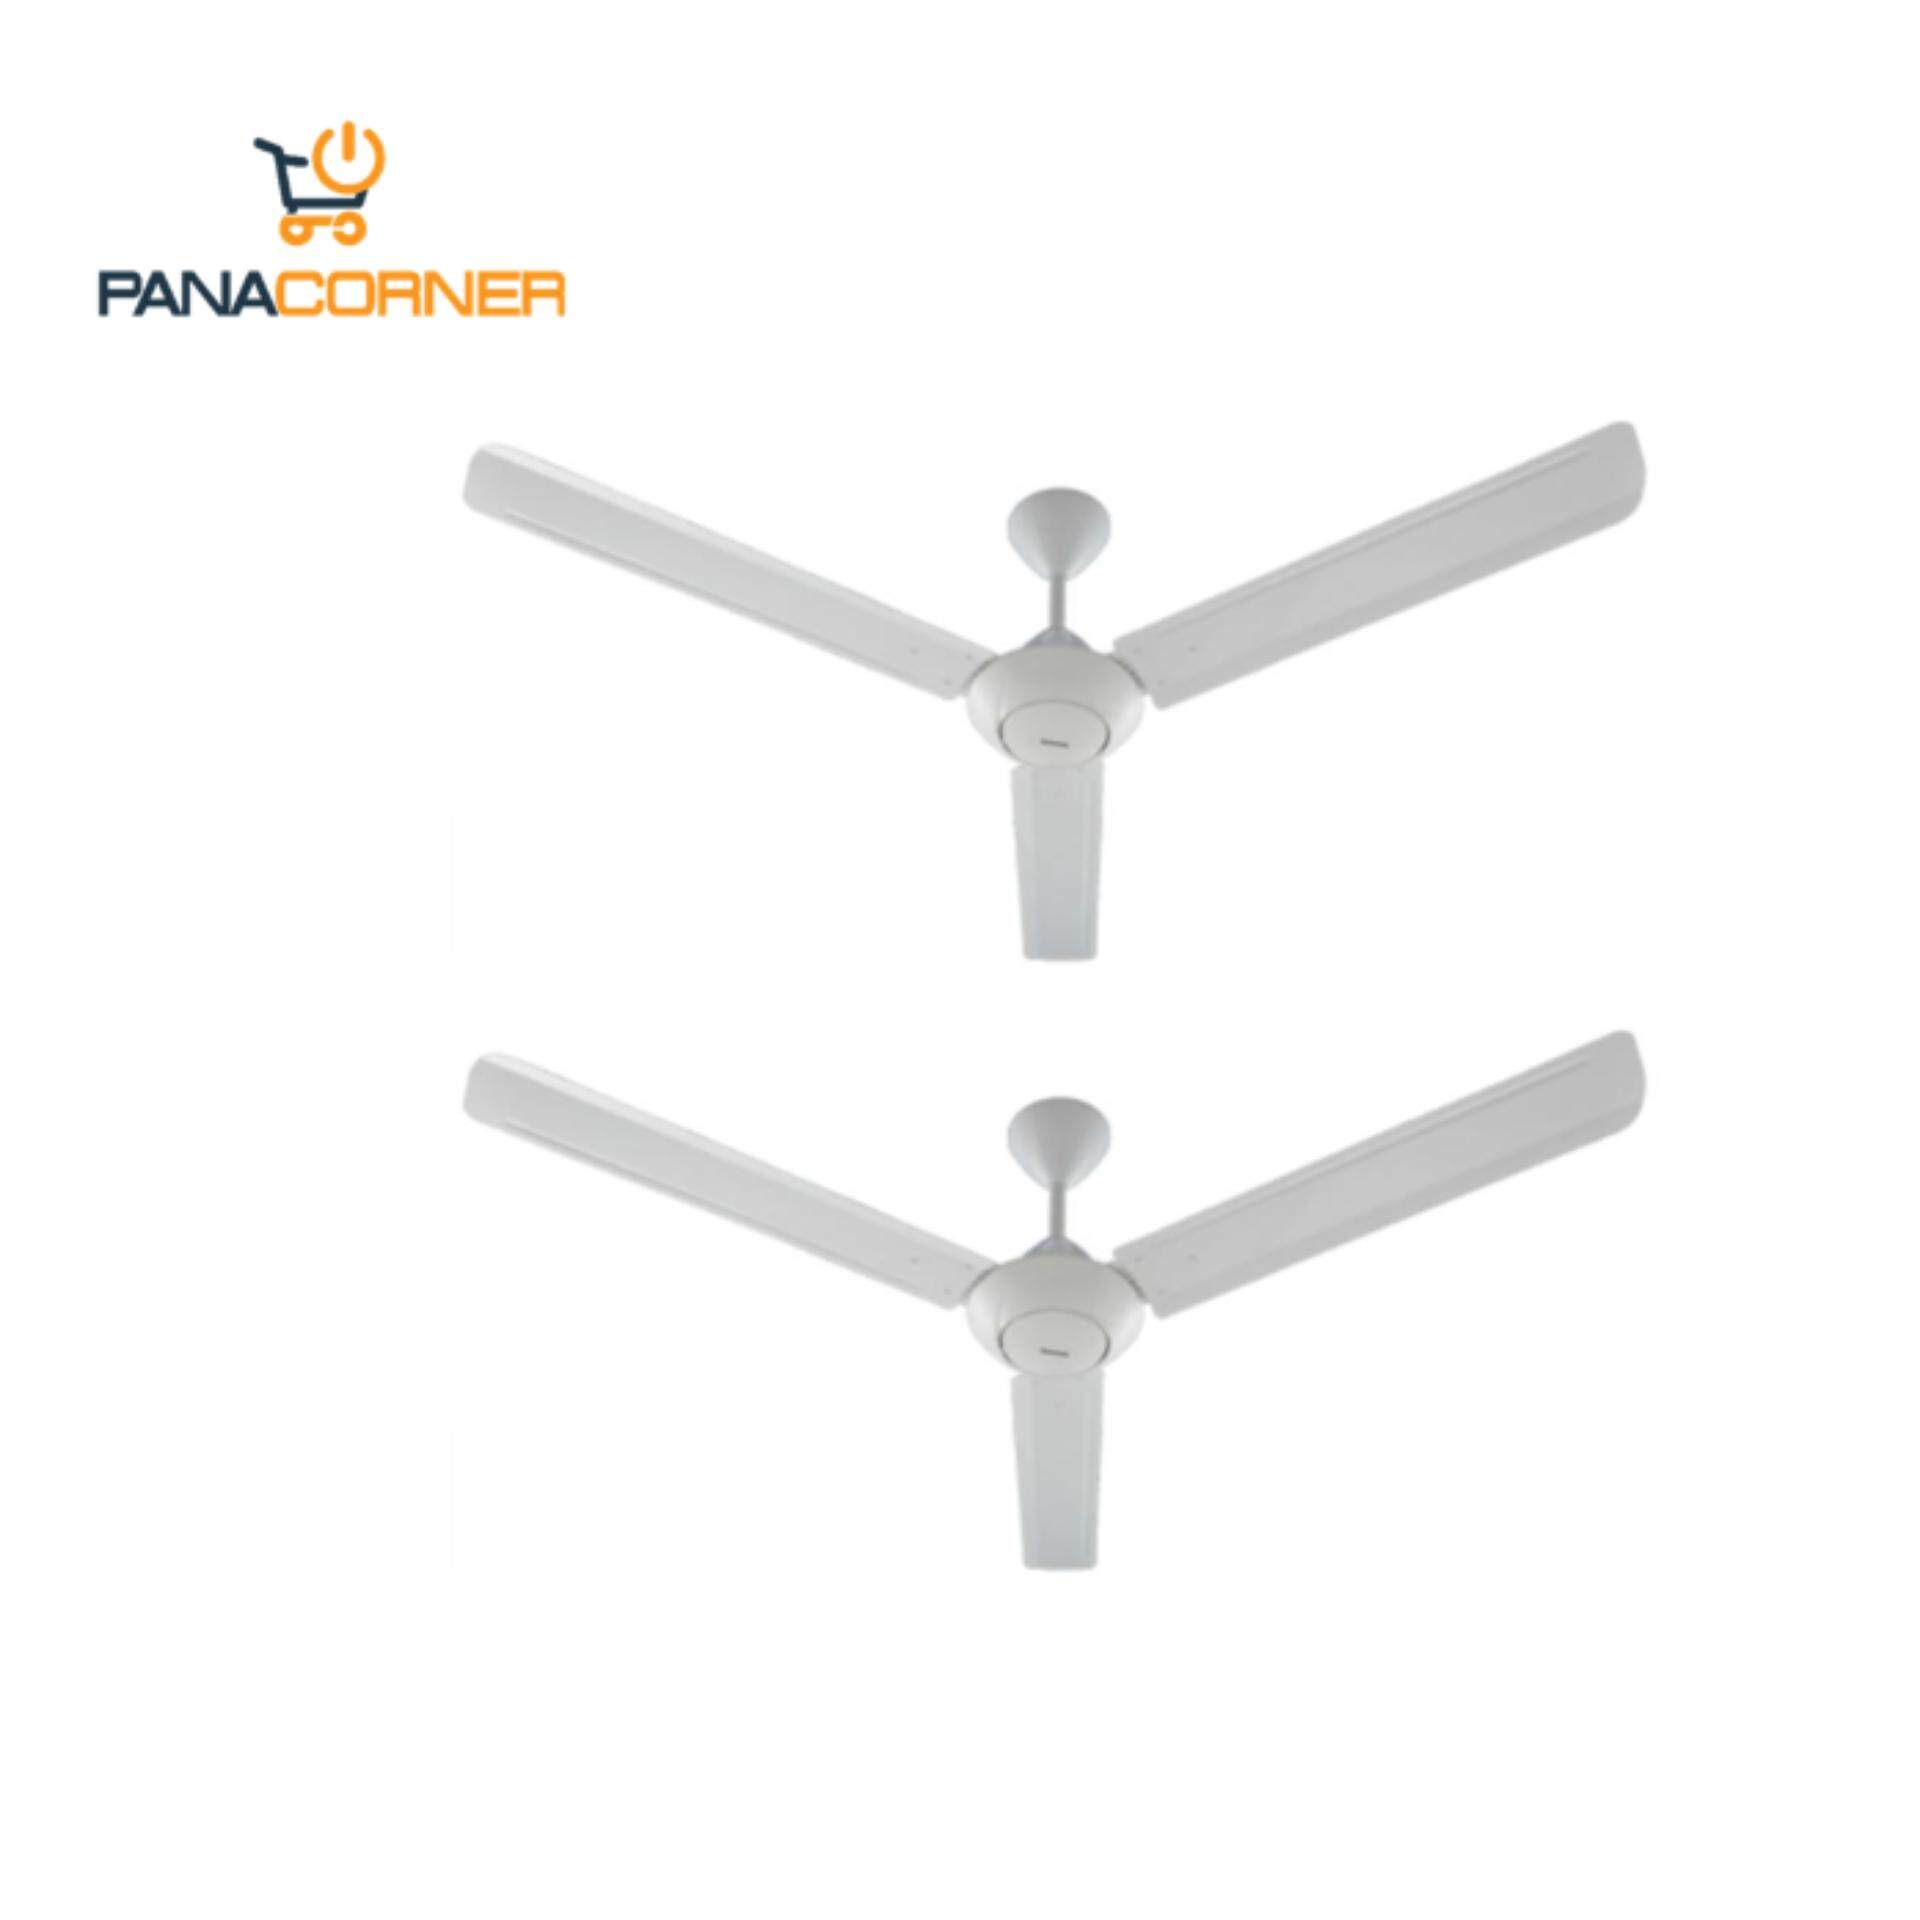 panasonic price fan with in to led change review ideas malaysia capacitor singapore india light f ceiling whisper how blades